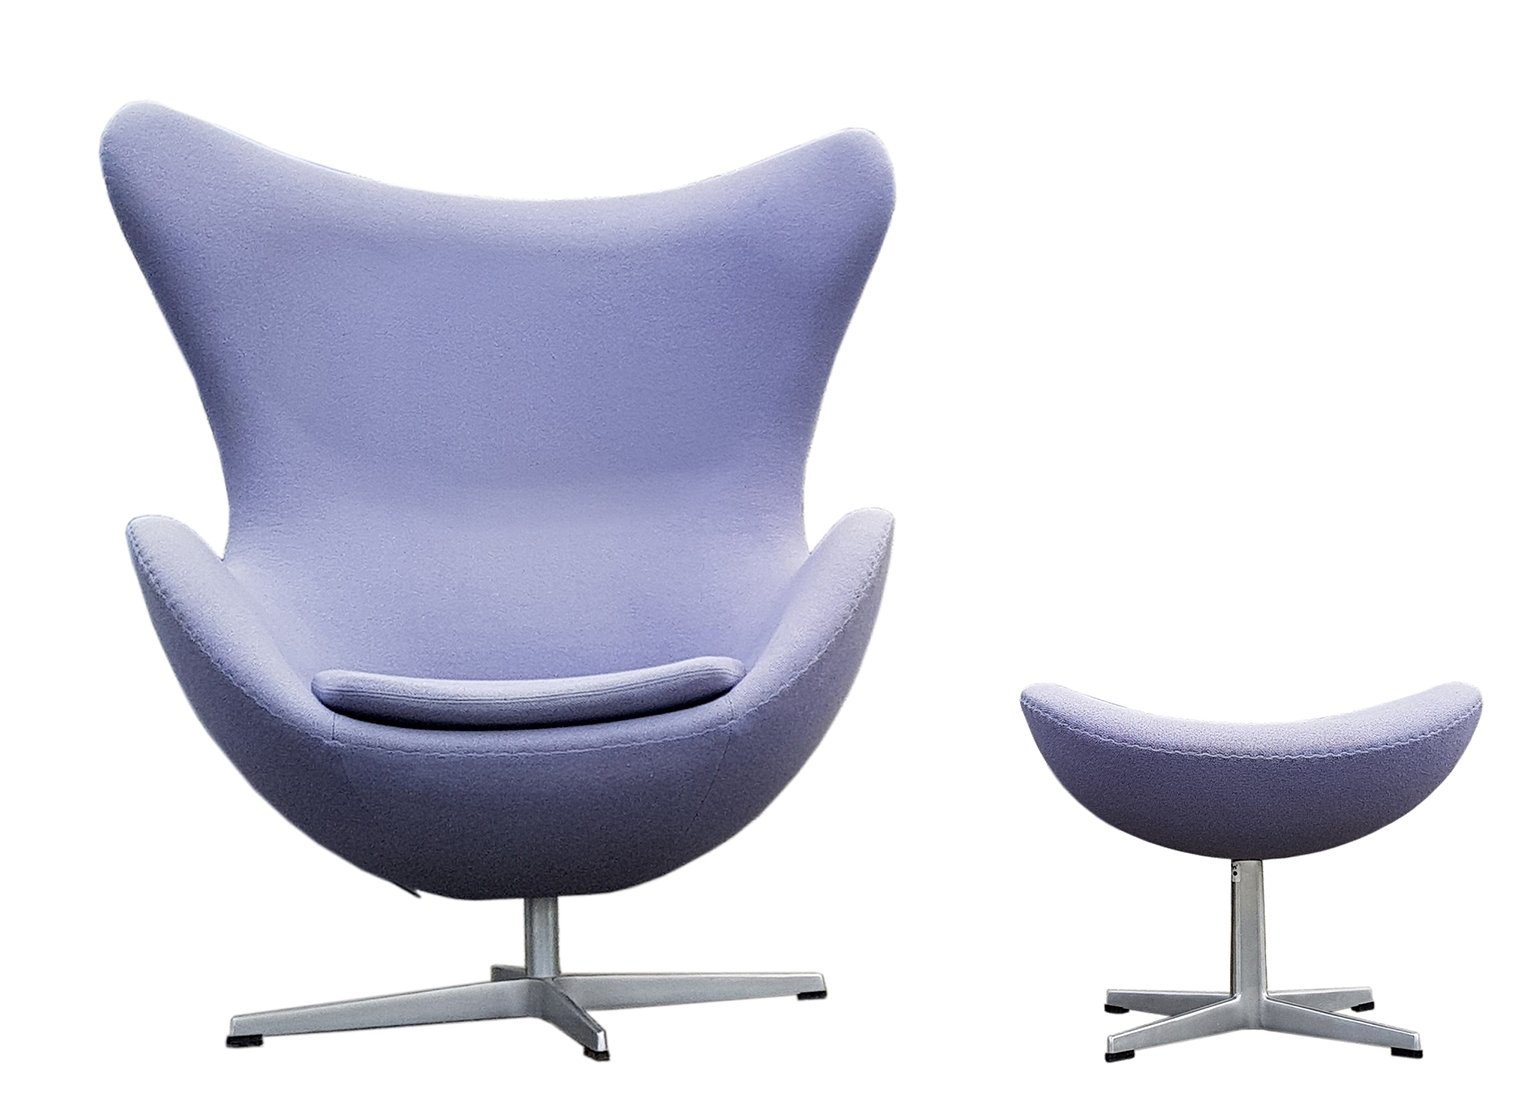 Iconic arne jacobsen egg chair ottoman by fritz hansen Iconic chair and ottoman